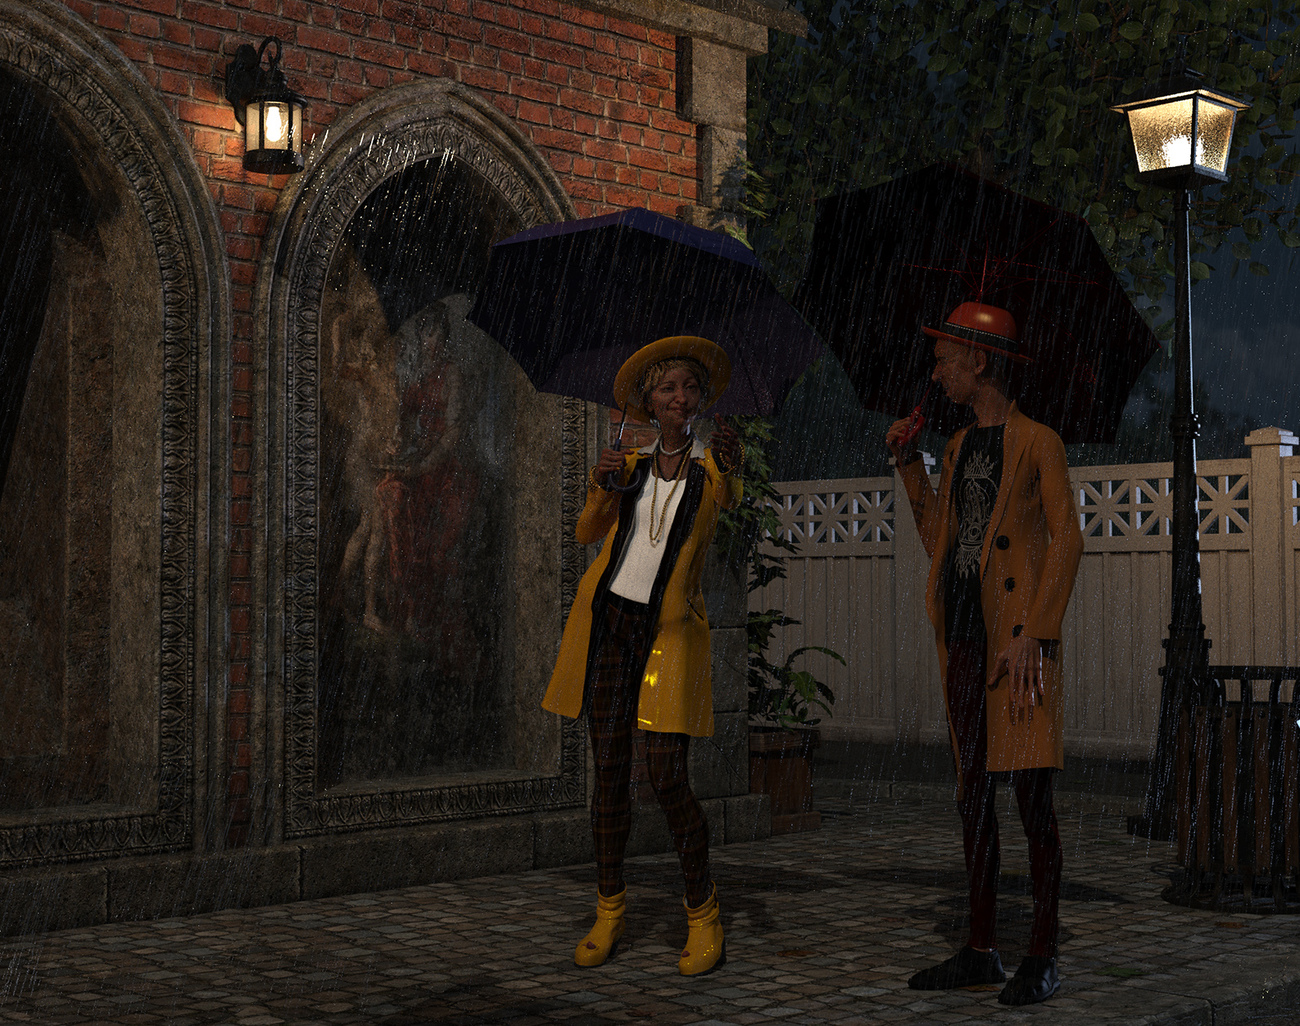 Encounter between neighbor in the rain by martial